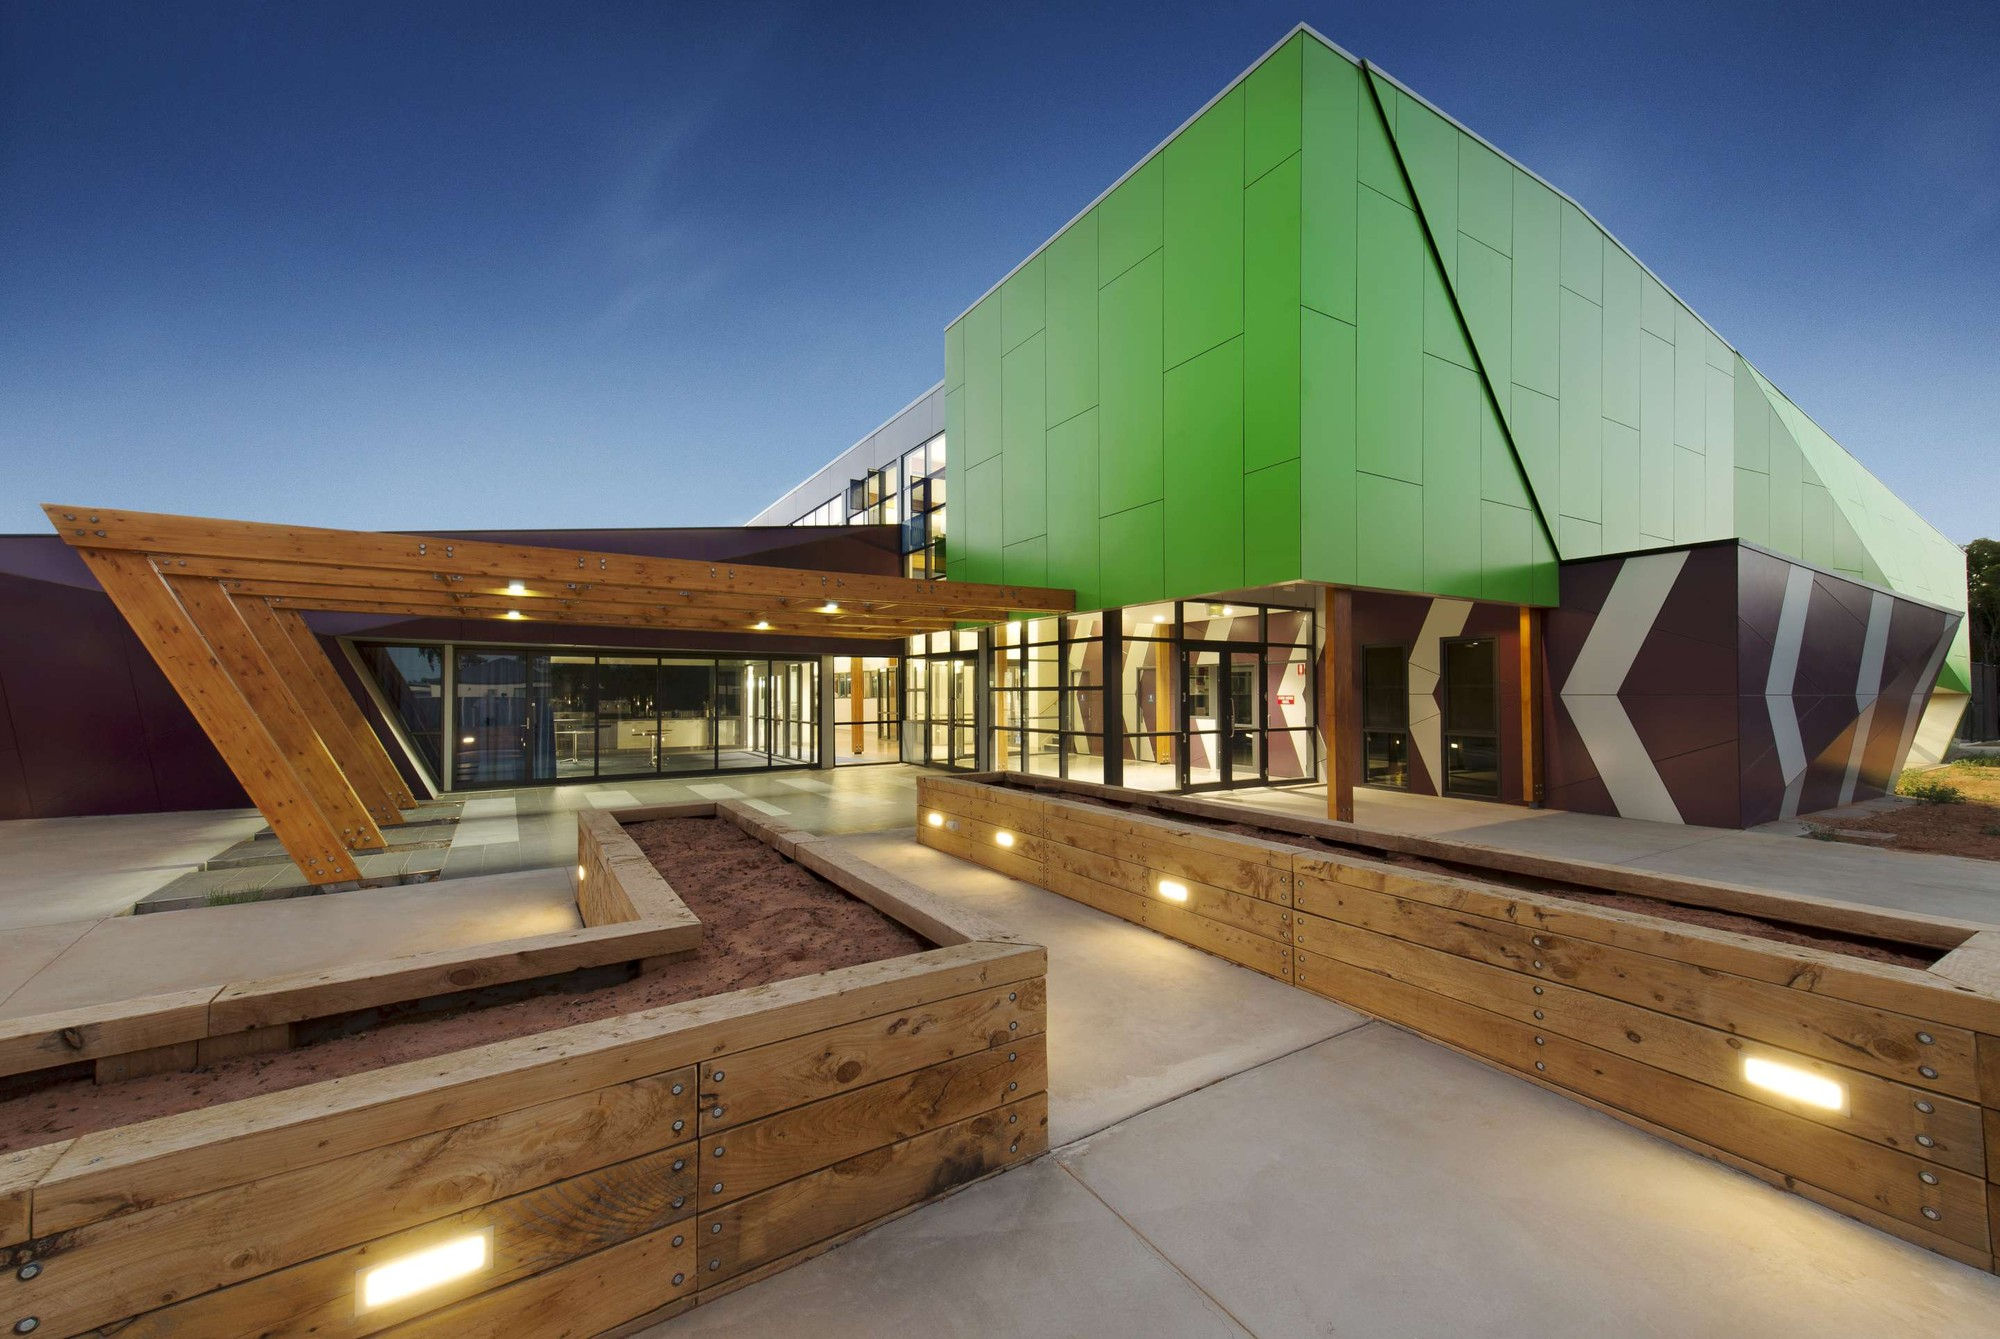 deakin trade training centre y architecture archdaily deakin trade training centre y2 architecture copy zachary couyant